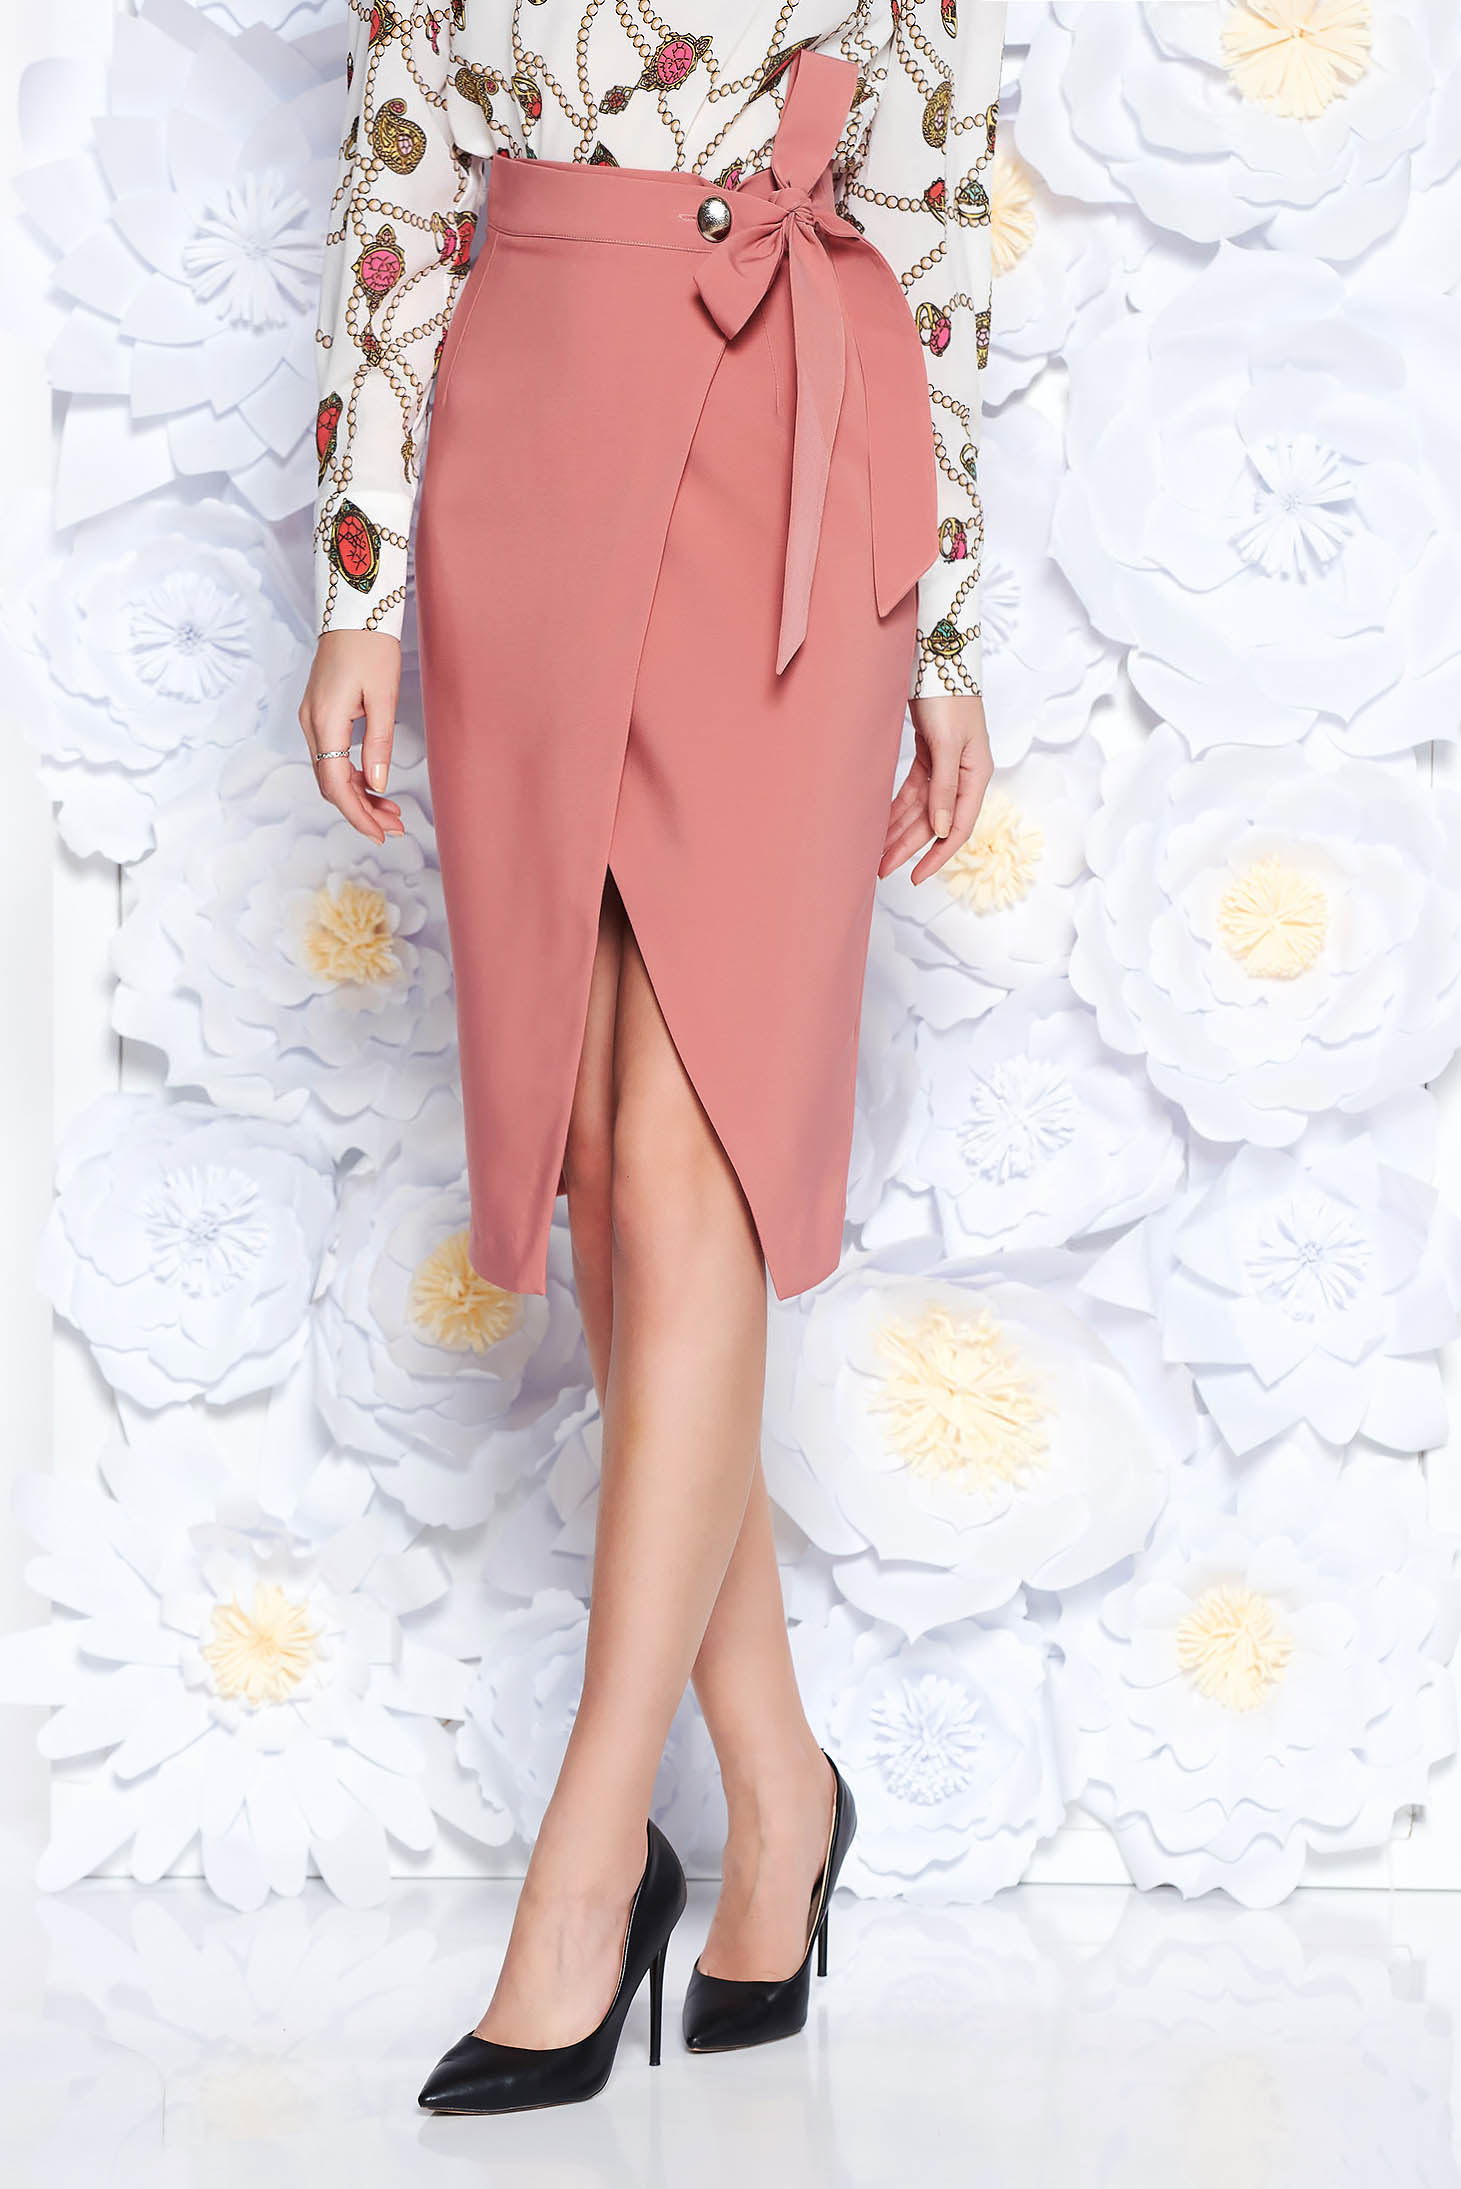 PrettyGirl rosa office high waisted pencil skirt slightly elastic fabric wrap around accessorized with tied waistband